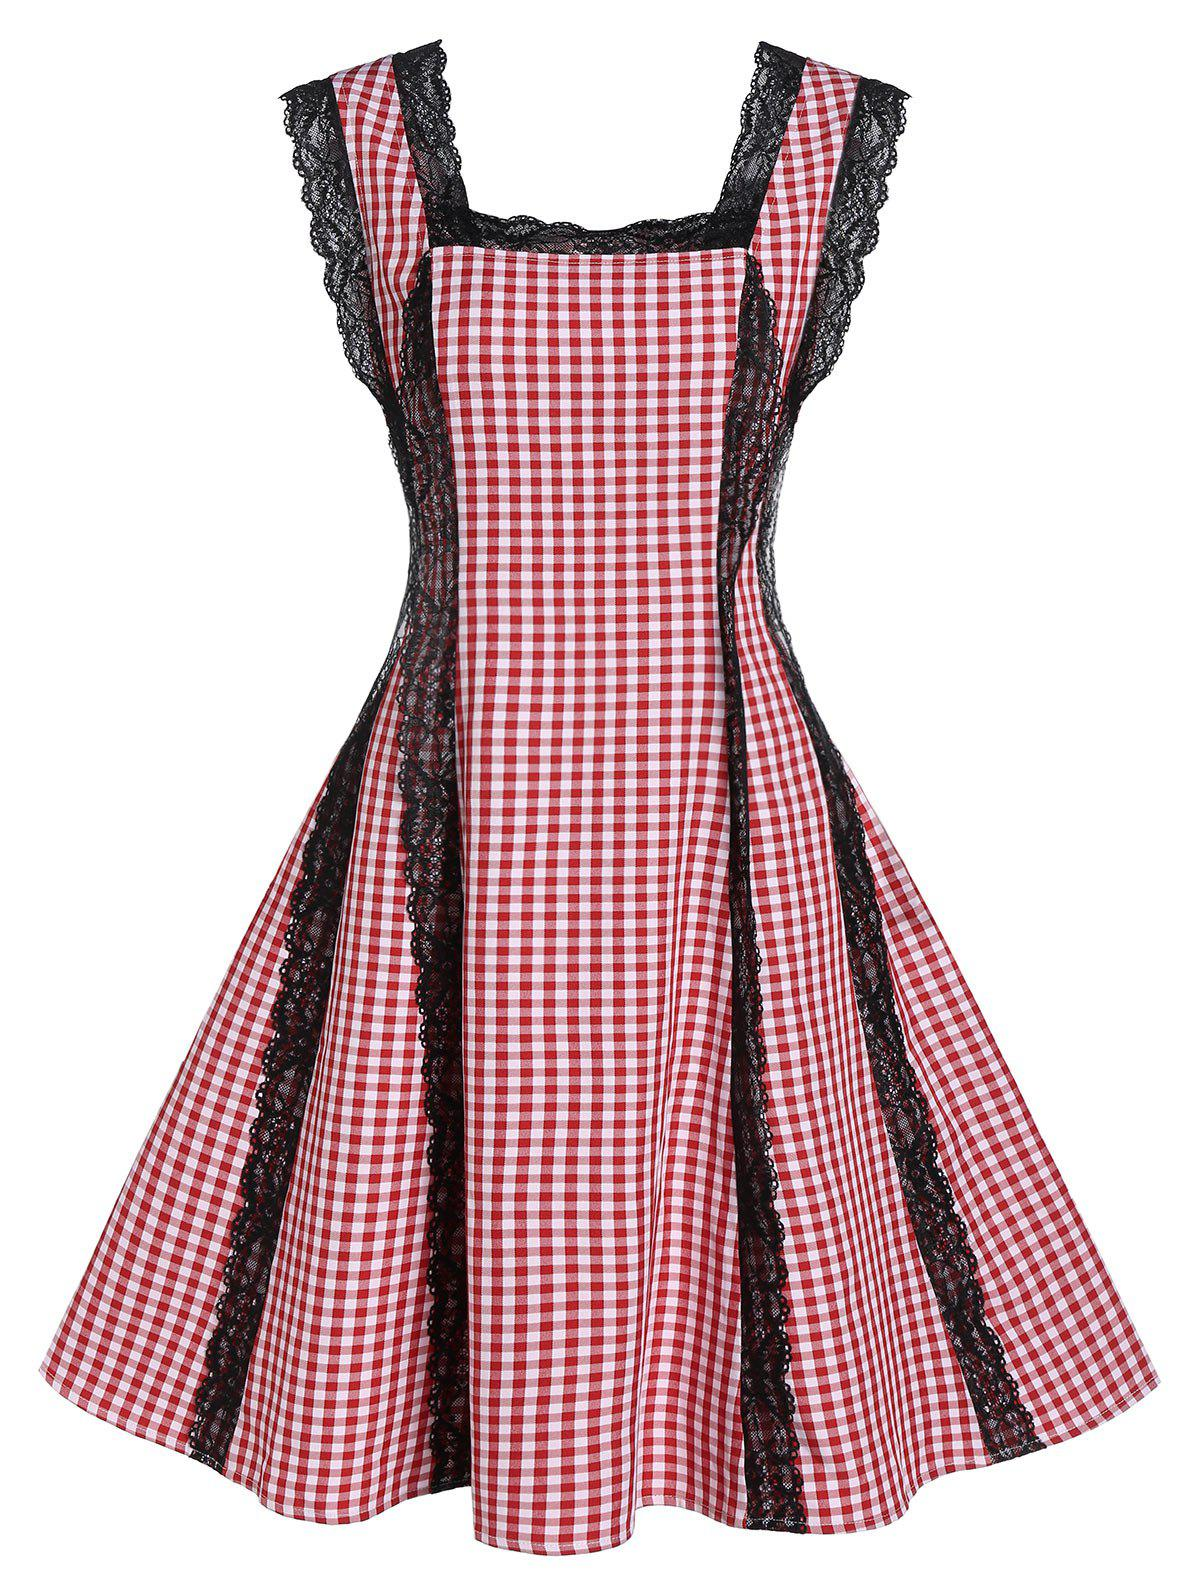 Plaid Pattern Square Neck Lace Patchwork Dress - RED XL